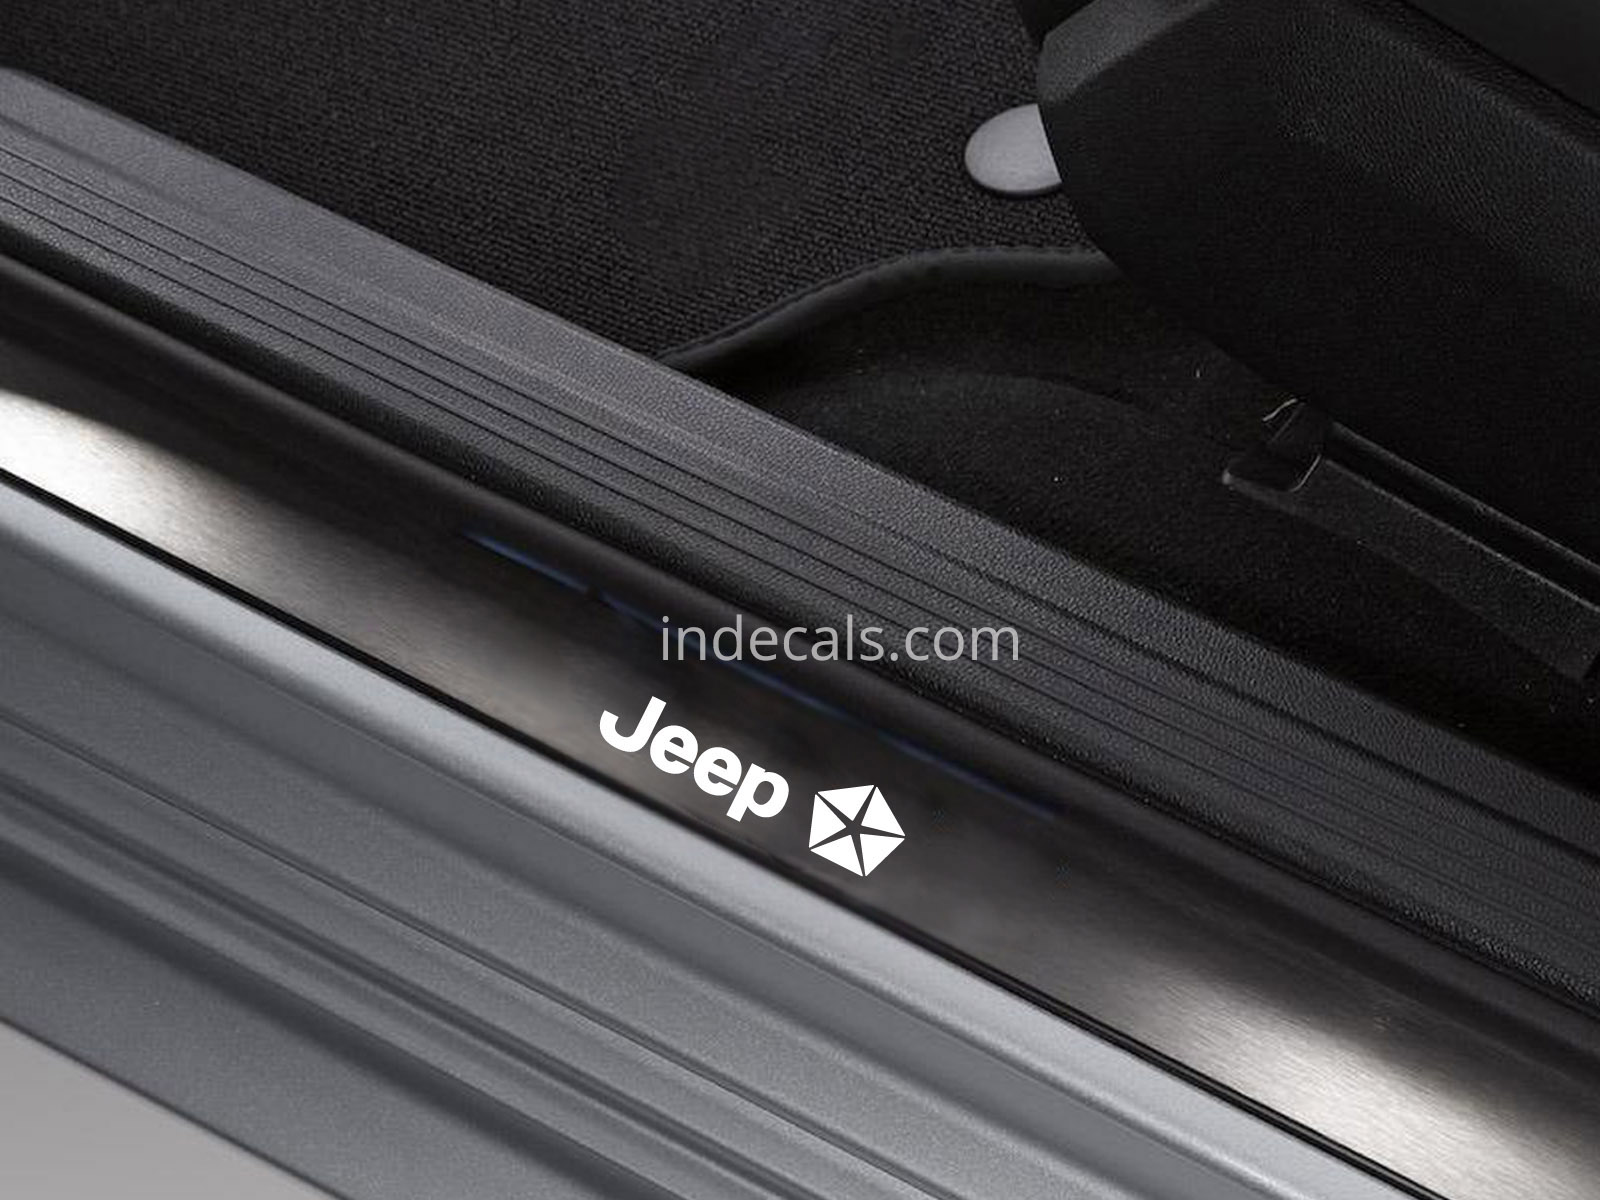 6 x Jeep Stickers for Door Sills - White